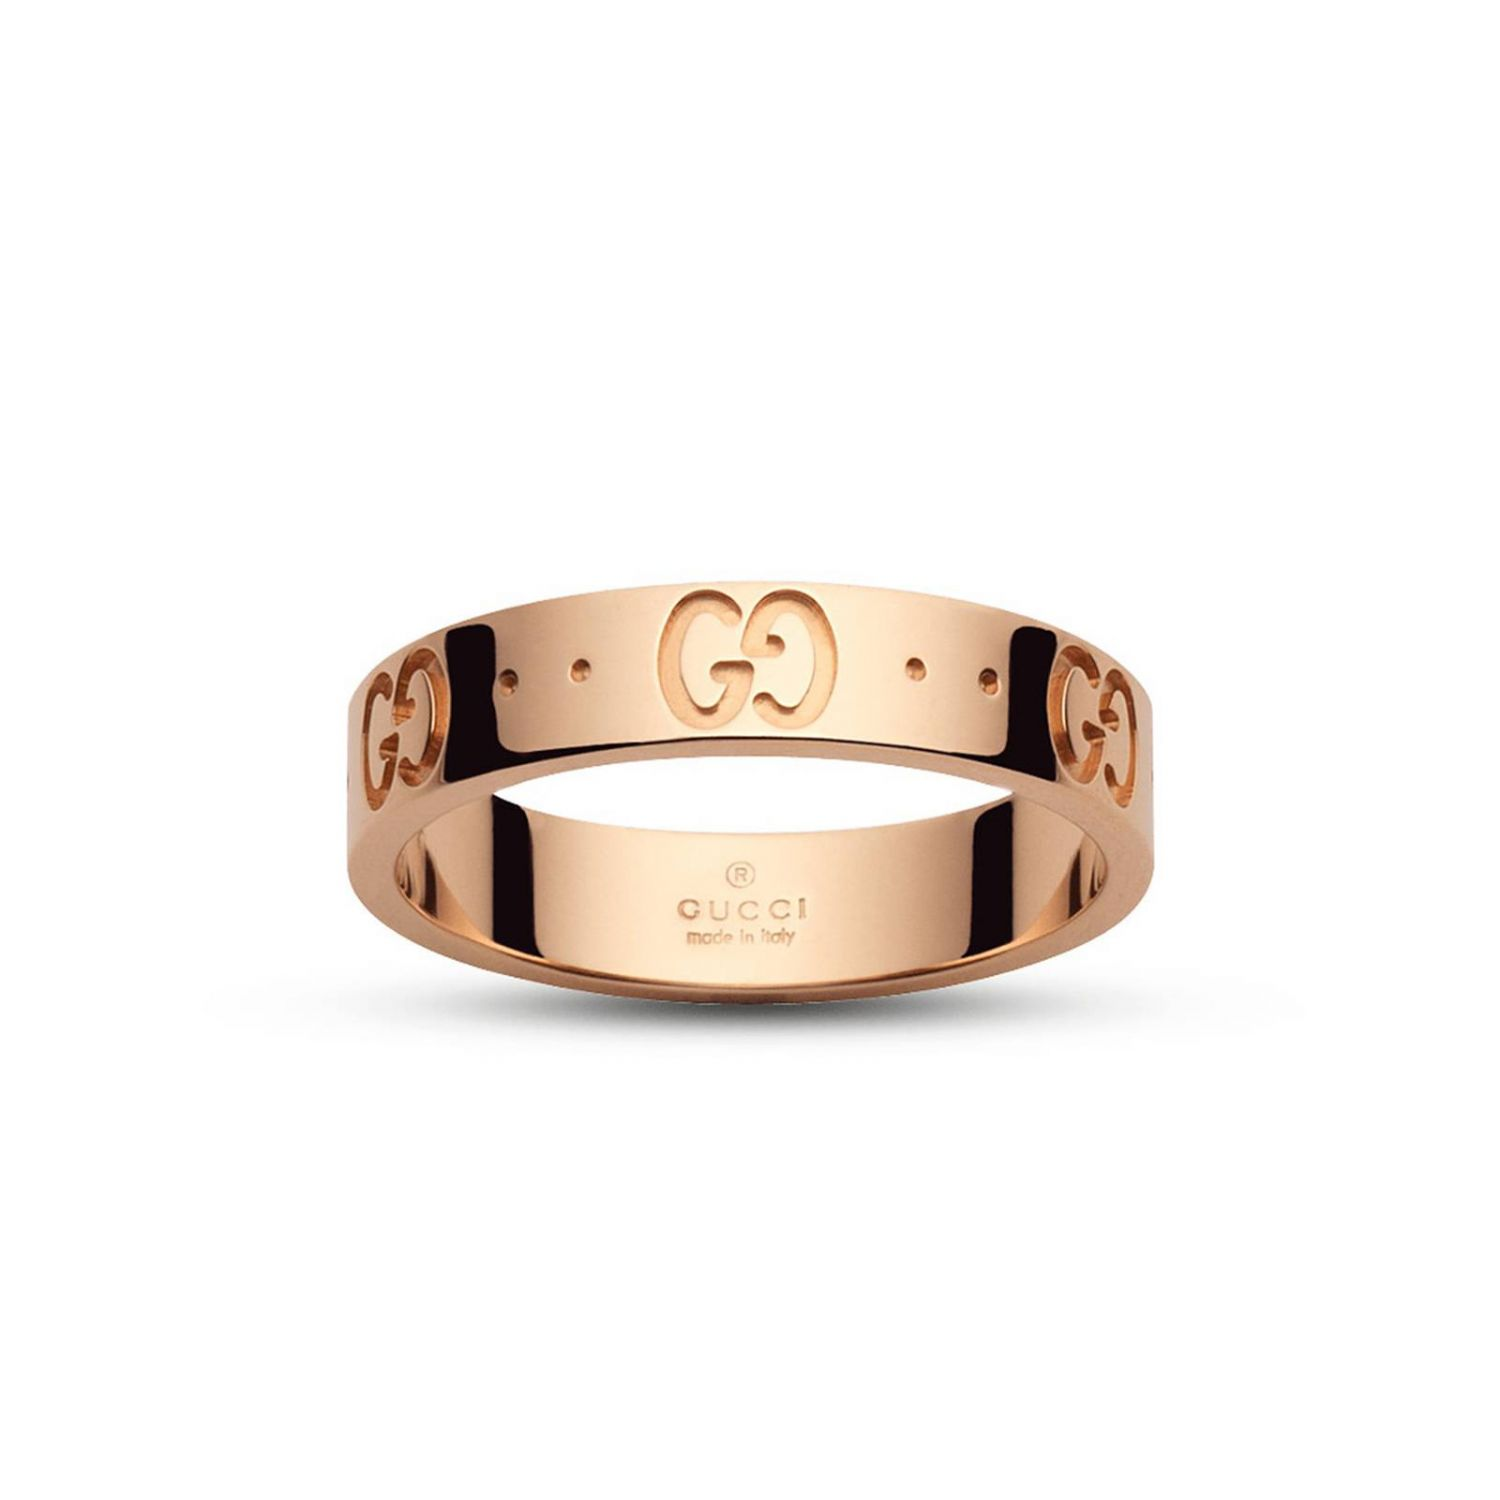 Jewel Low Icon Ring 14 In Gold With Engraved Gg 8260922